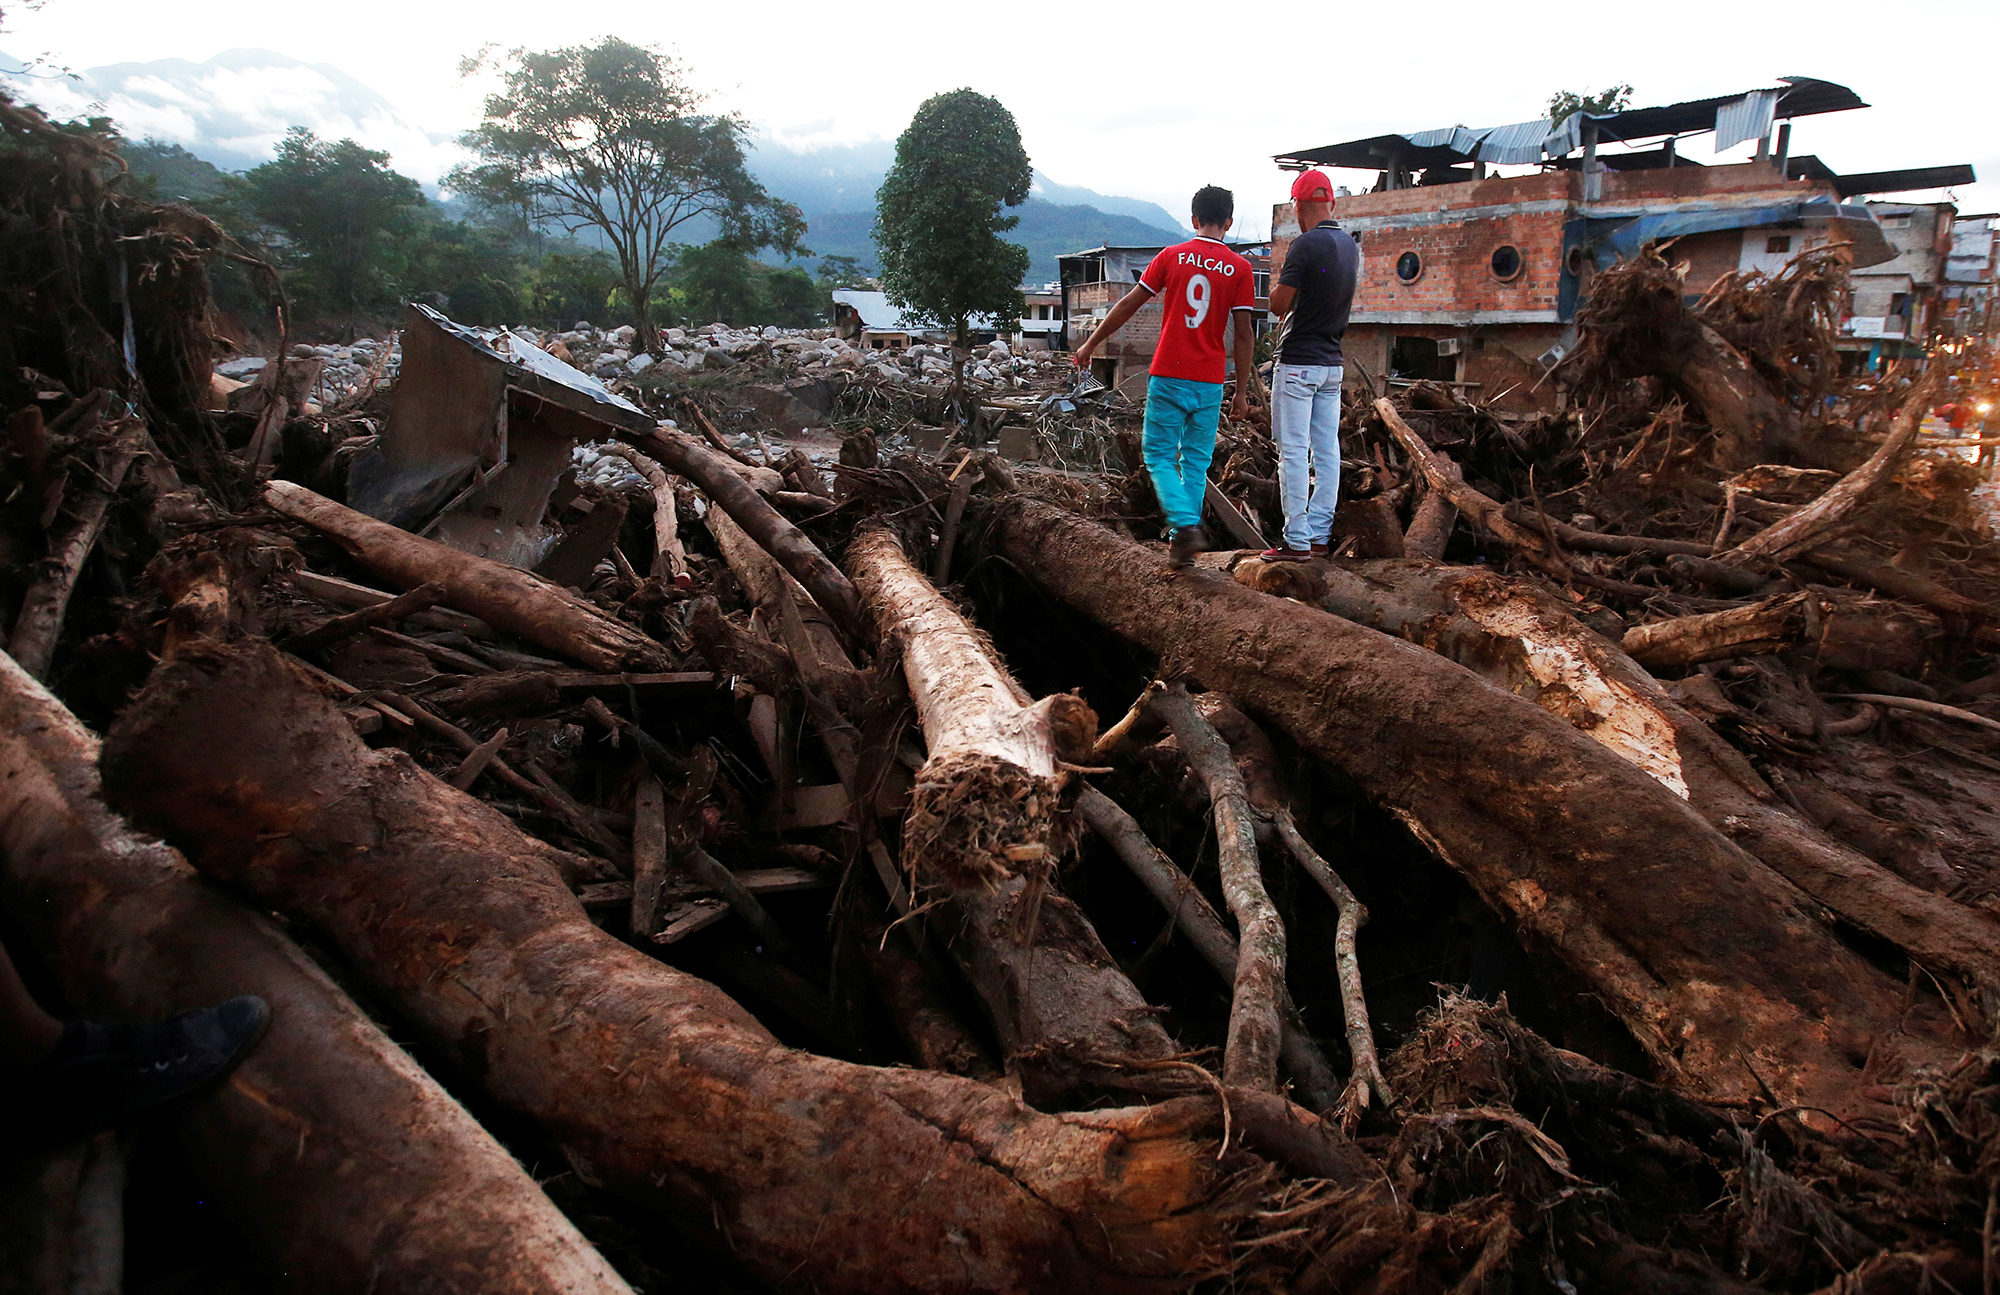 Men look at a destroyed area afterwards heavy rains caused several rivers to overflow, pushing sediment and rocks into buildings and roads in Mocoa, Colombia, on April 1, 2017.